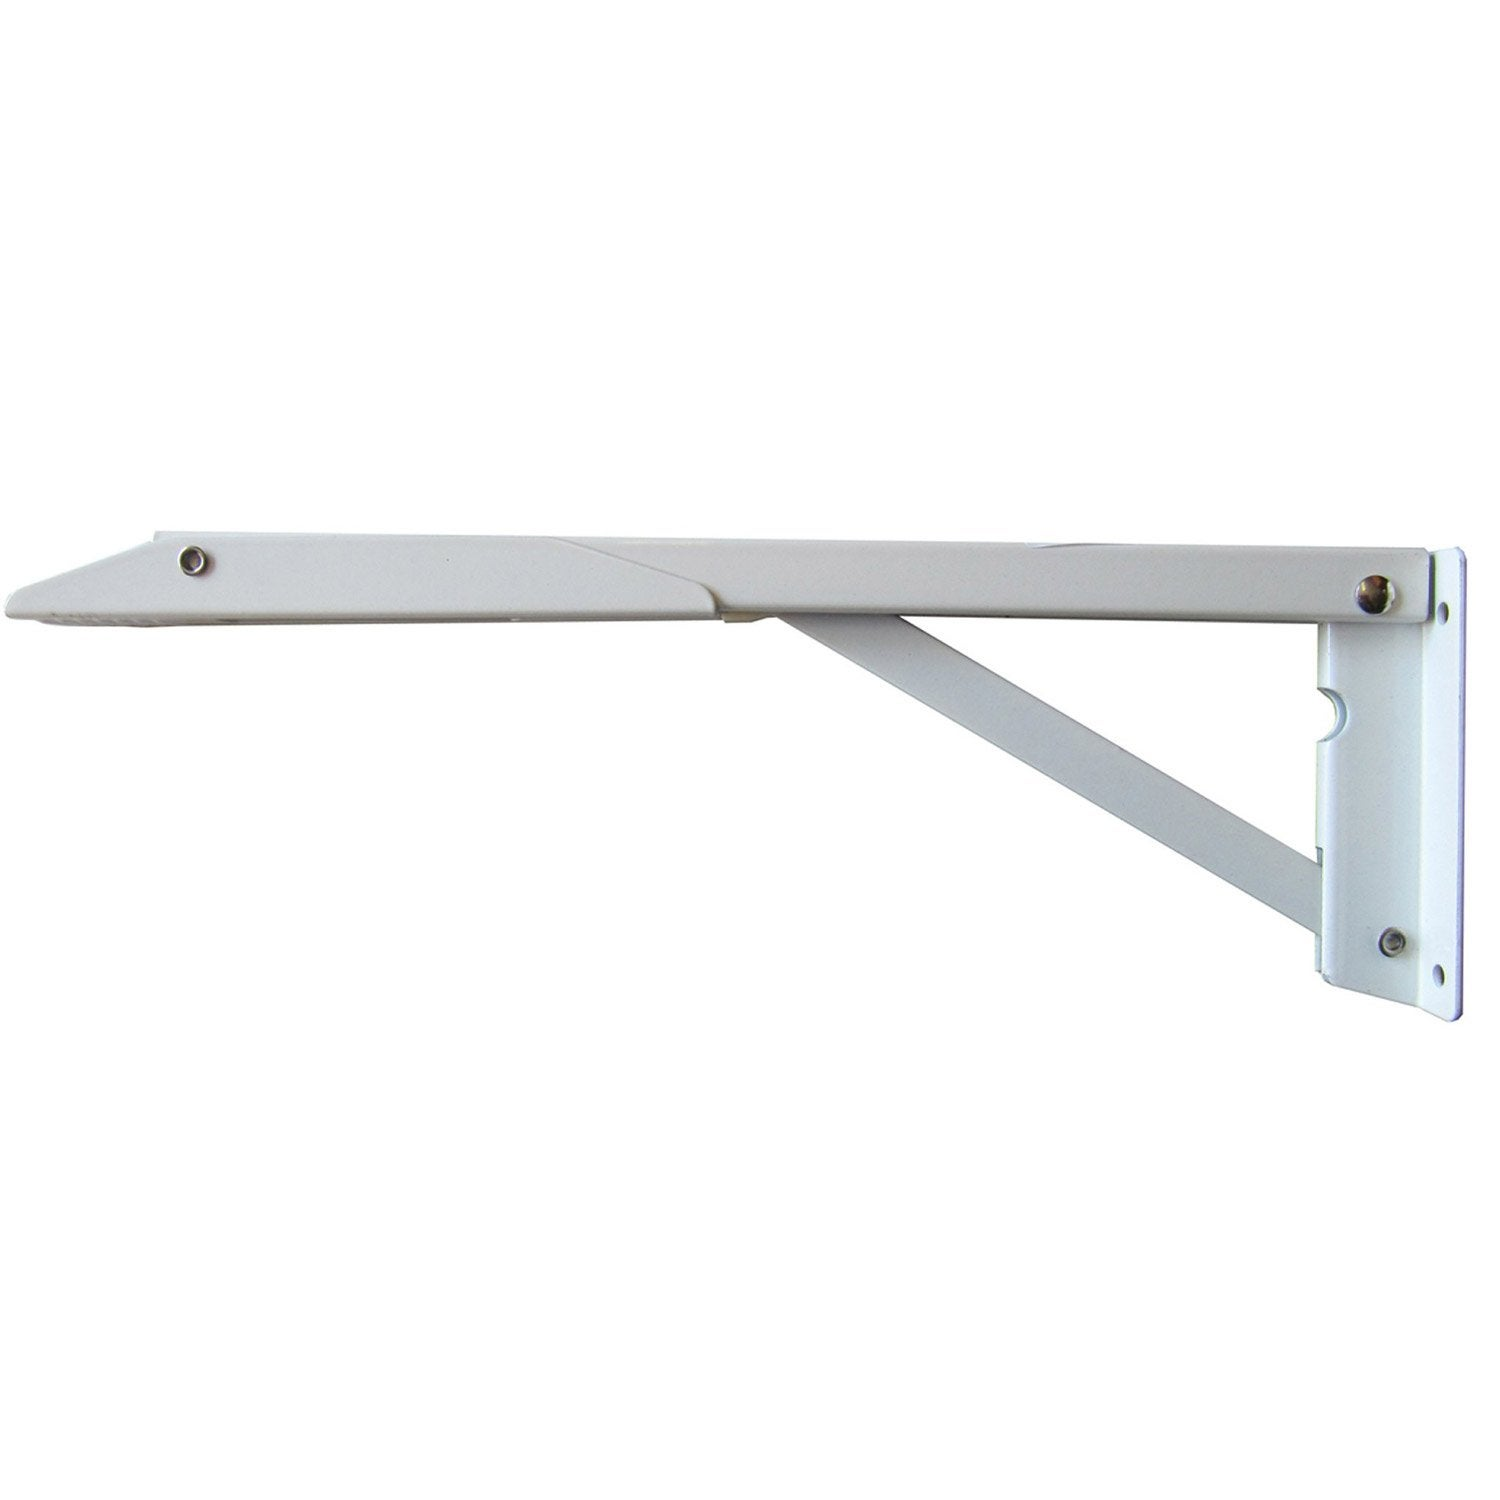 Equerre pliante 110x350mm leroy merlin - Table pliante leroy merlin ...